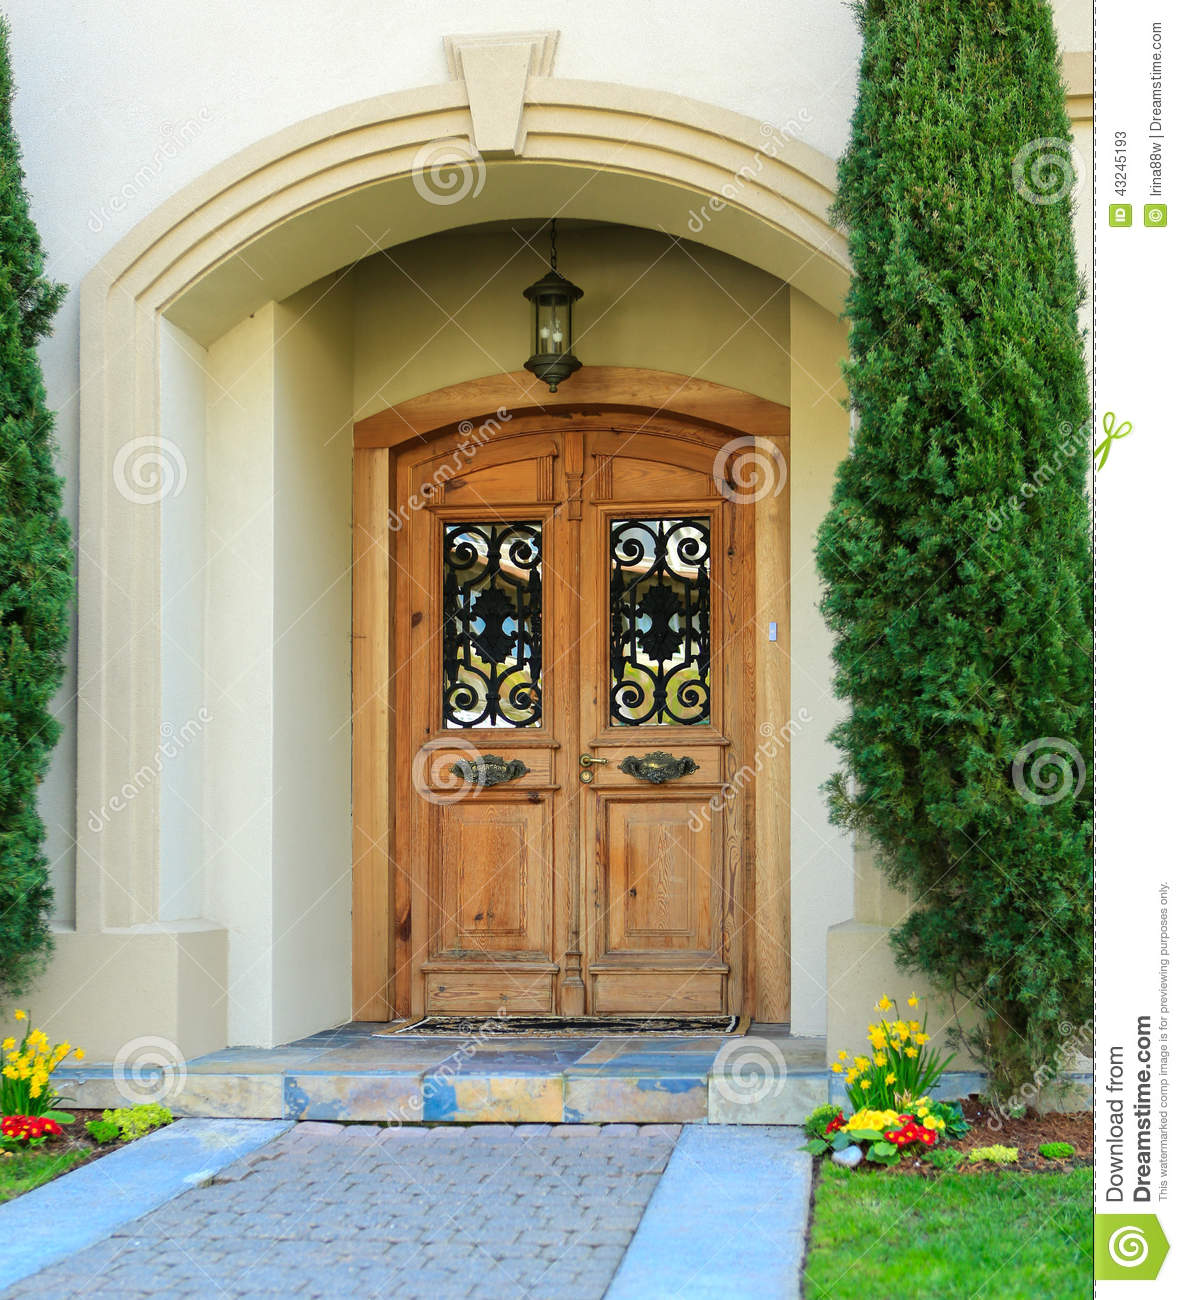 ... house entrance porch with wooden door and wrought iron details on it